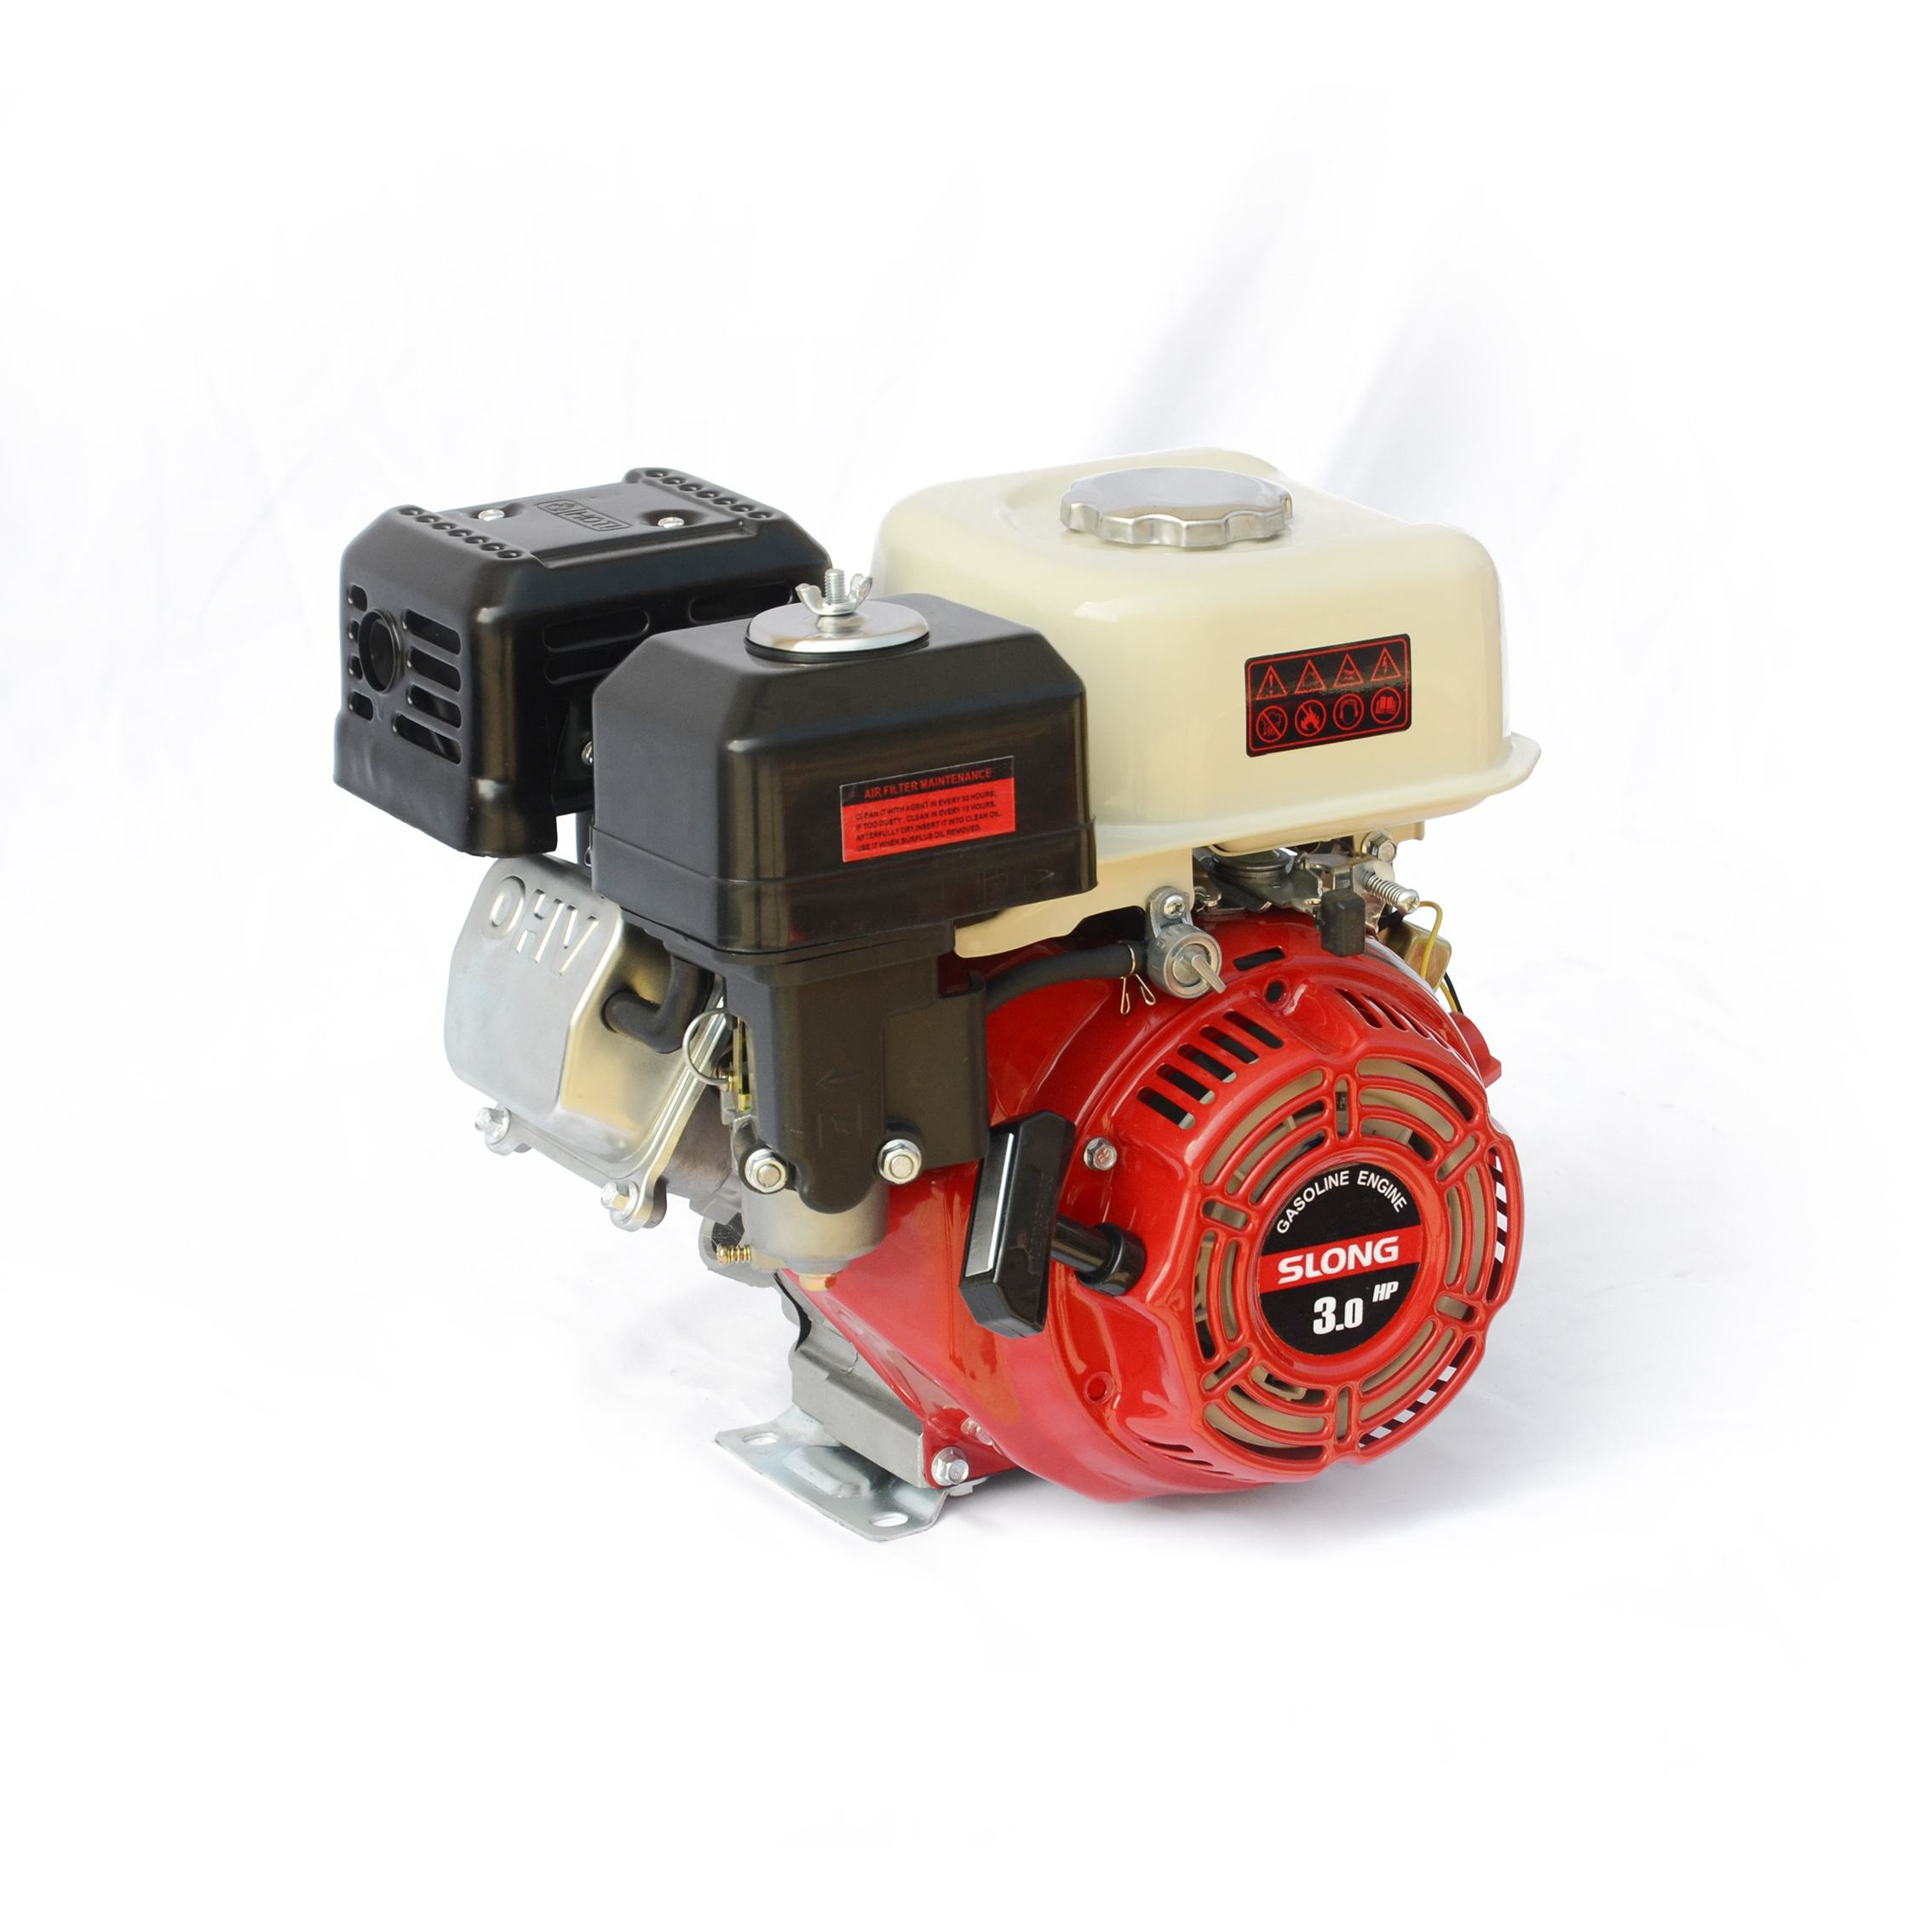 3 hp 98.5cc GX80 gasoline engine